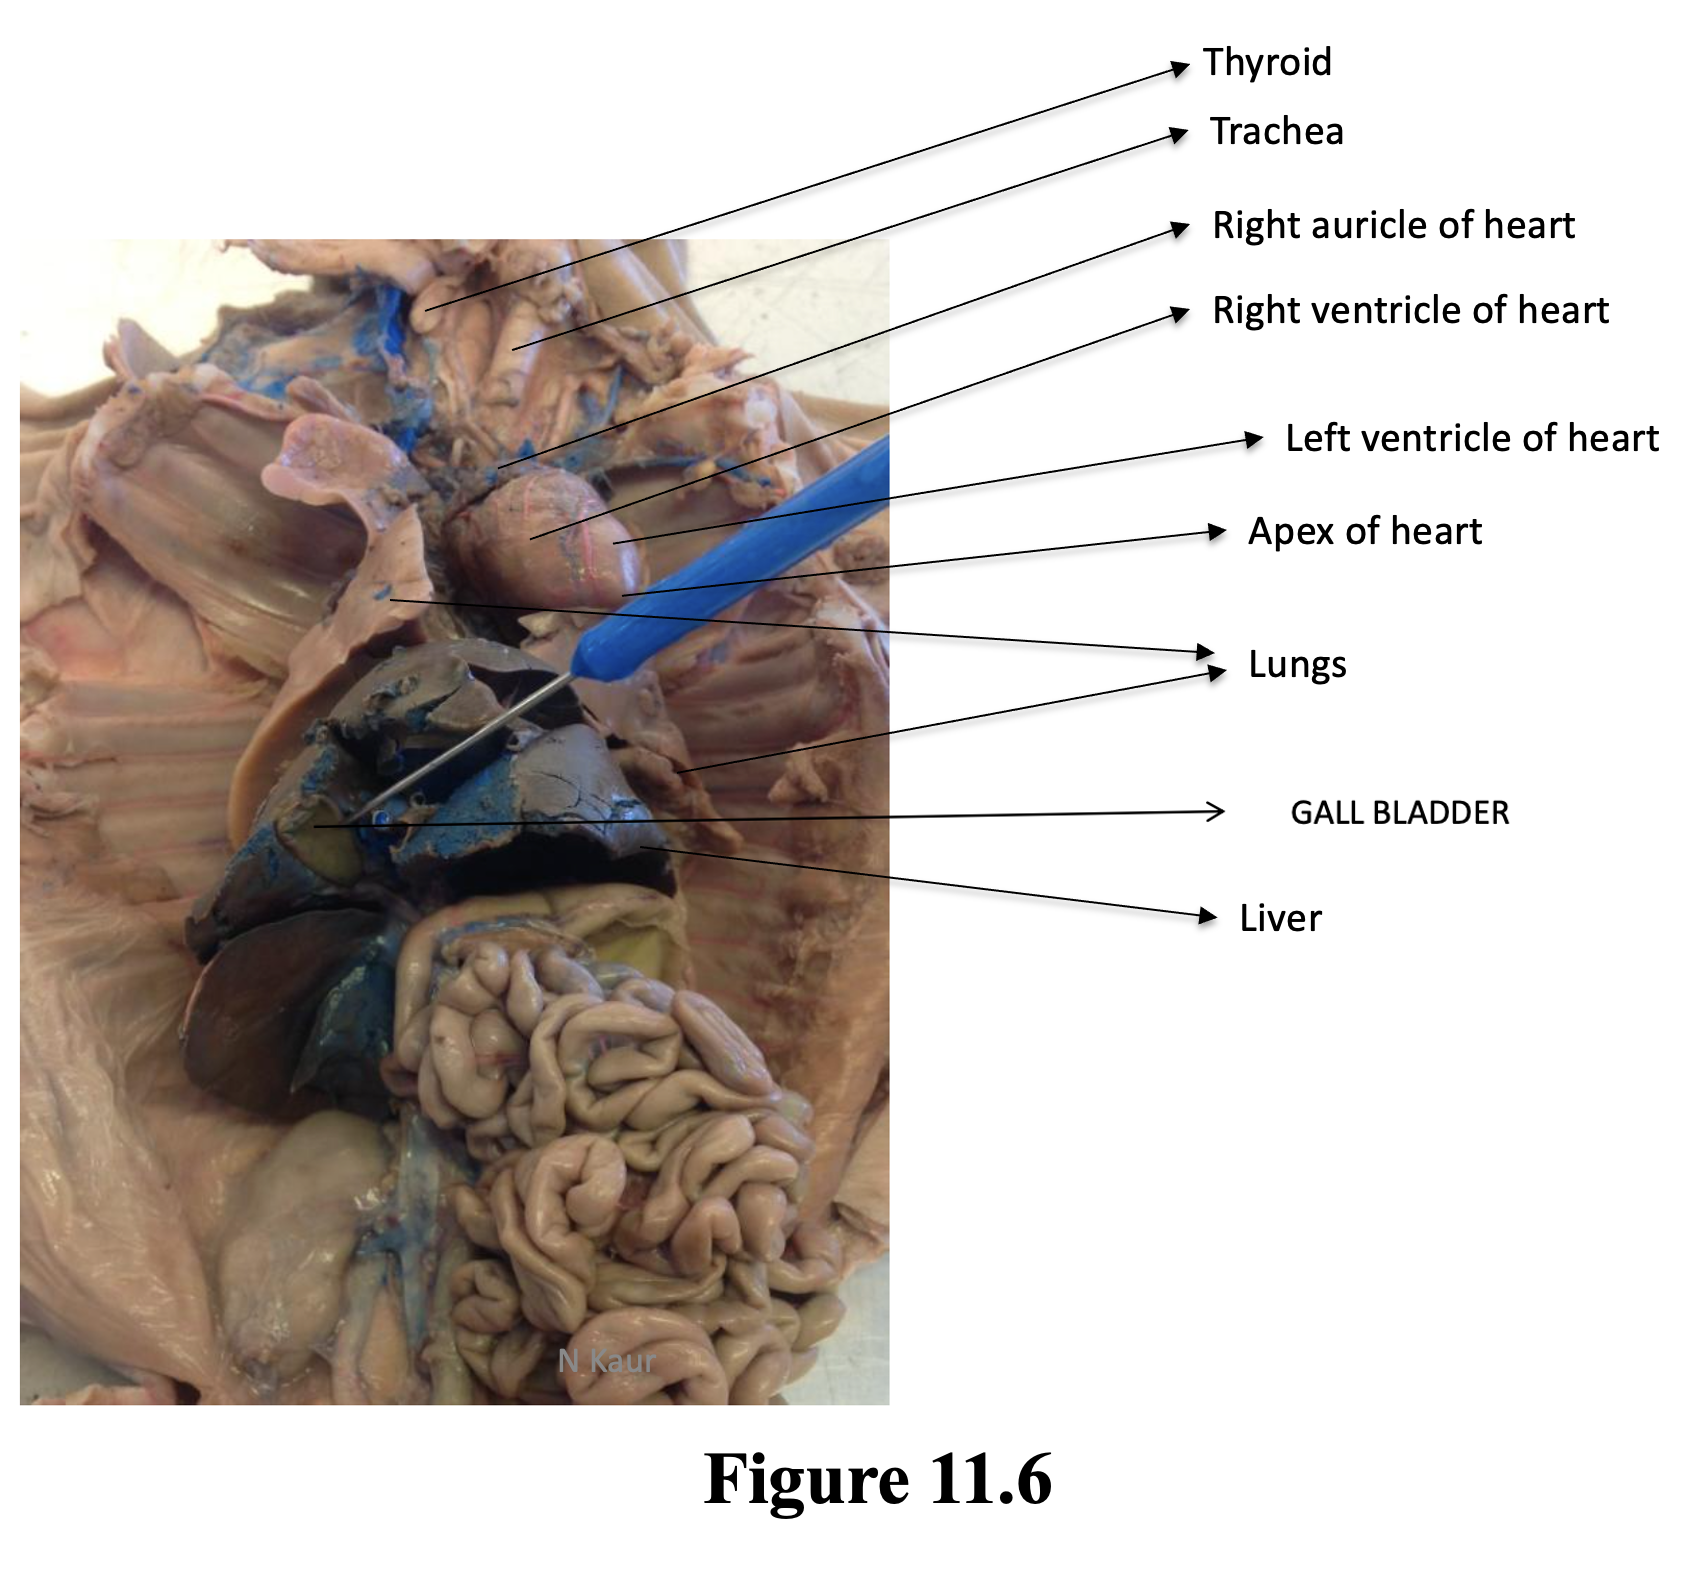 Figure 11.6 shows the major organs of the thoracic cavity including the some of the major parts of the heart; the right auricle which looks like a dark red dog ear. The right auricle covers the right atria; the right ventricle and the left ventricle which are separated by red and blue blood vessels (coronary arteries and veins); the apex of the heart which is found in the lower left side of the heart. The heart side between two lungs which occupy much of the thoracic cavity. Also highlighted are the thyroid and trachea discussed in figure 11.5 and the liver and gallbladder which are in the abdominal cavity and were discussed in lab 10.